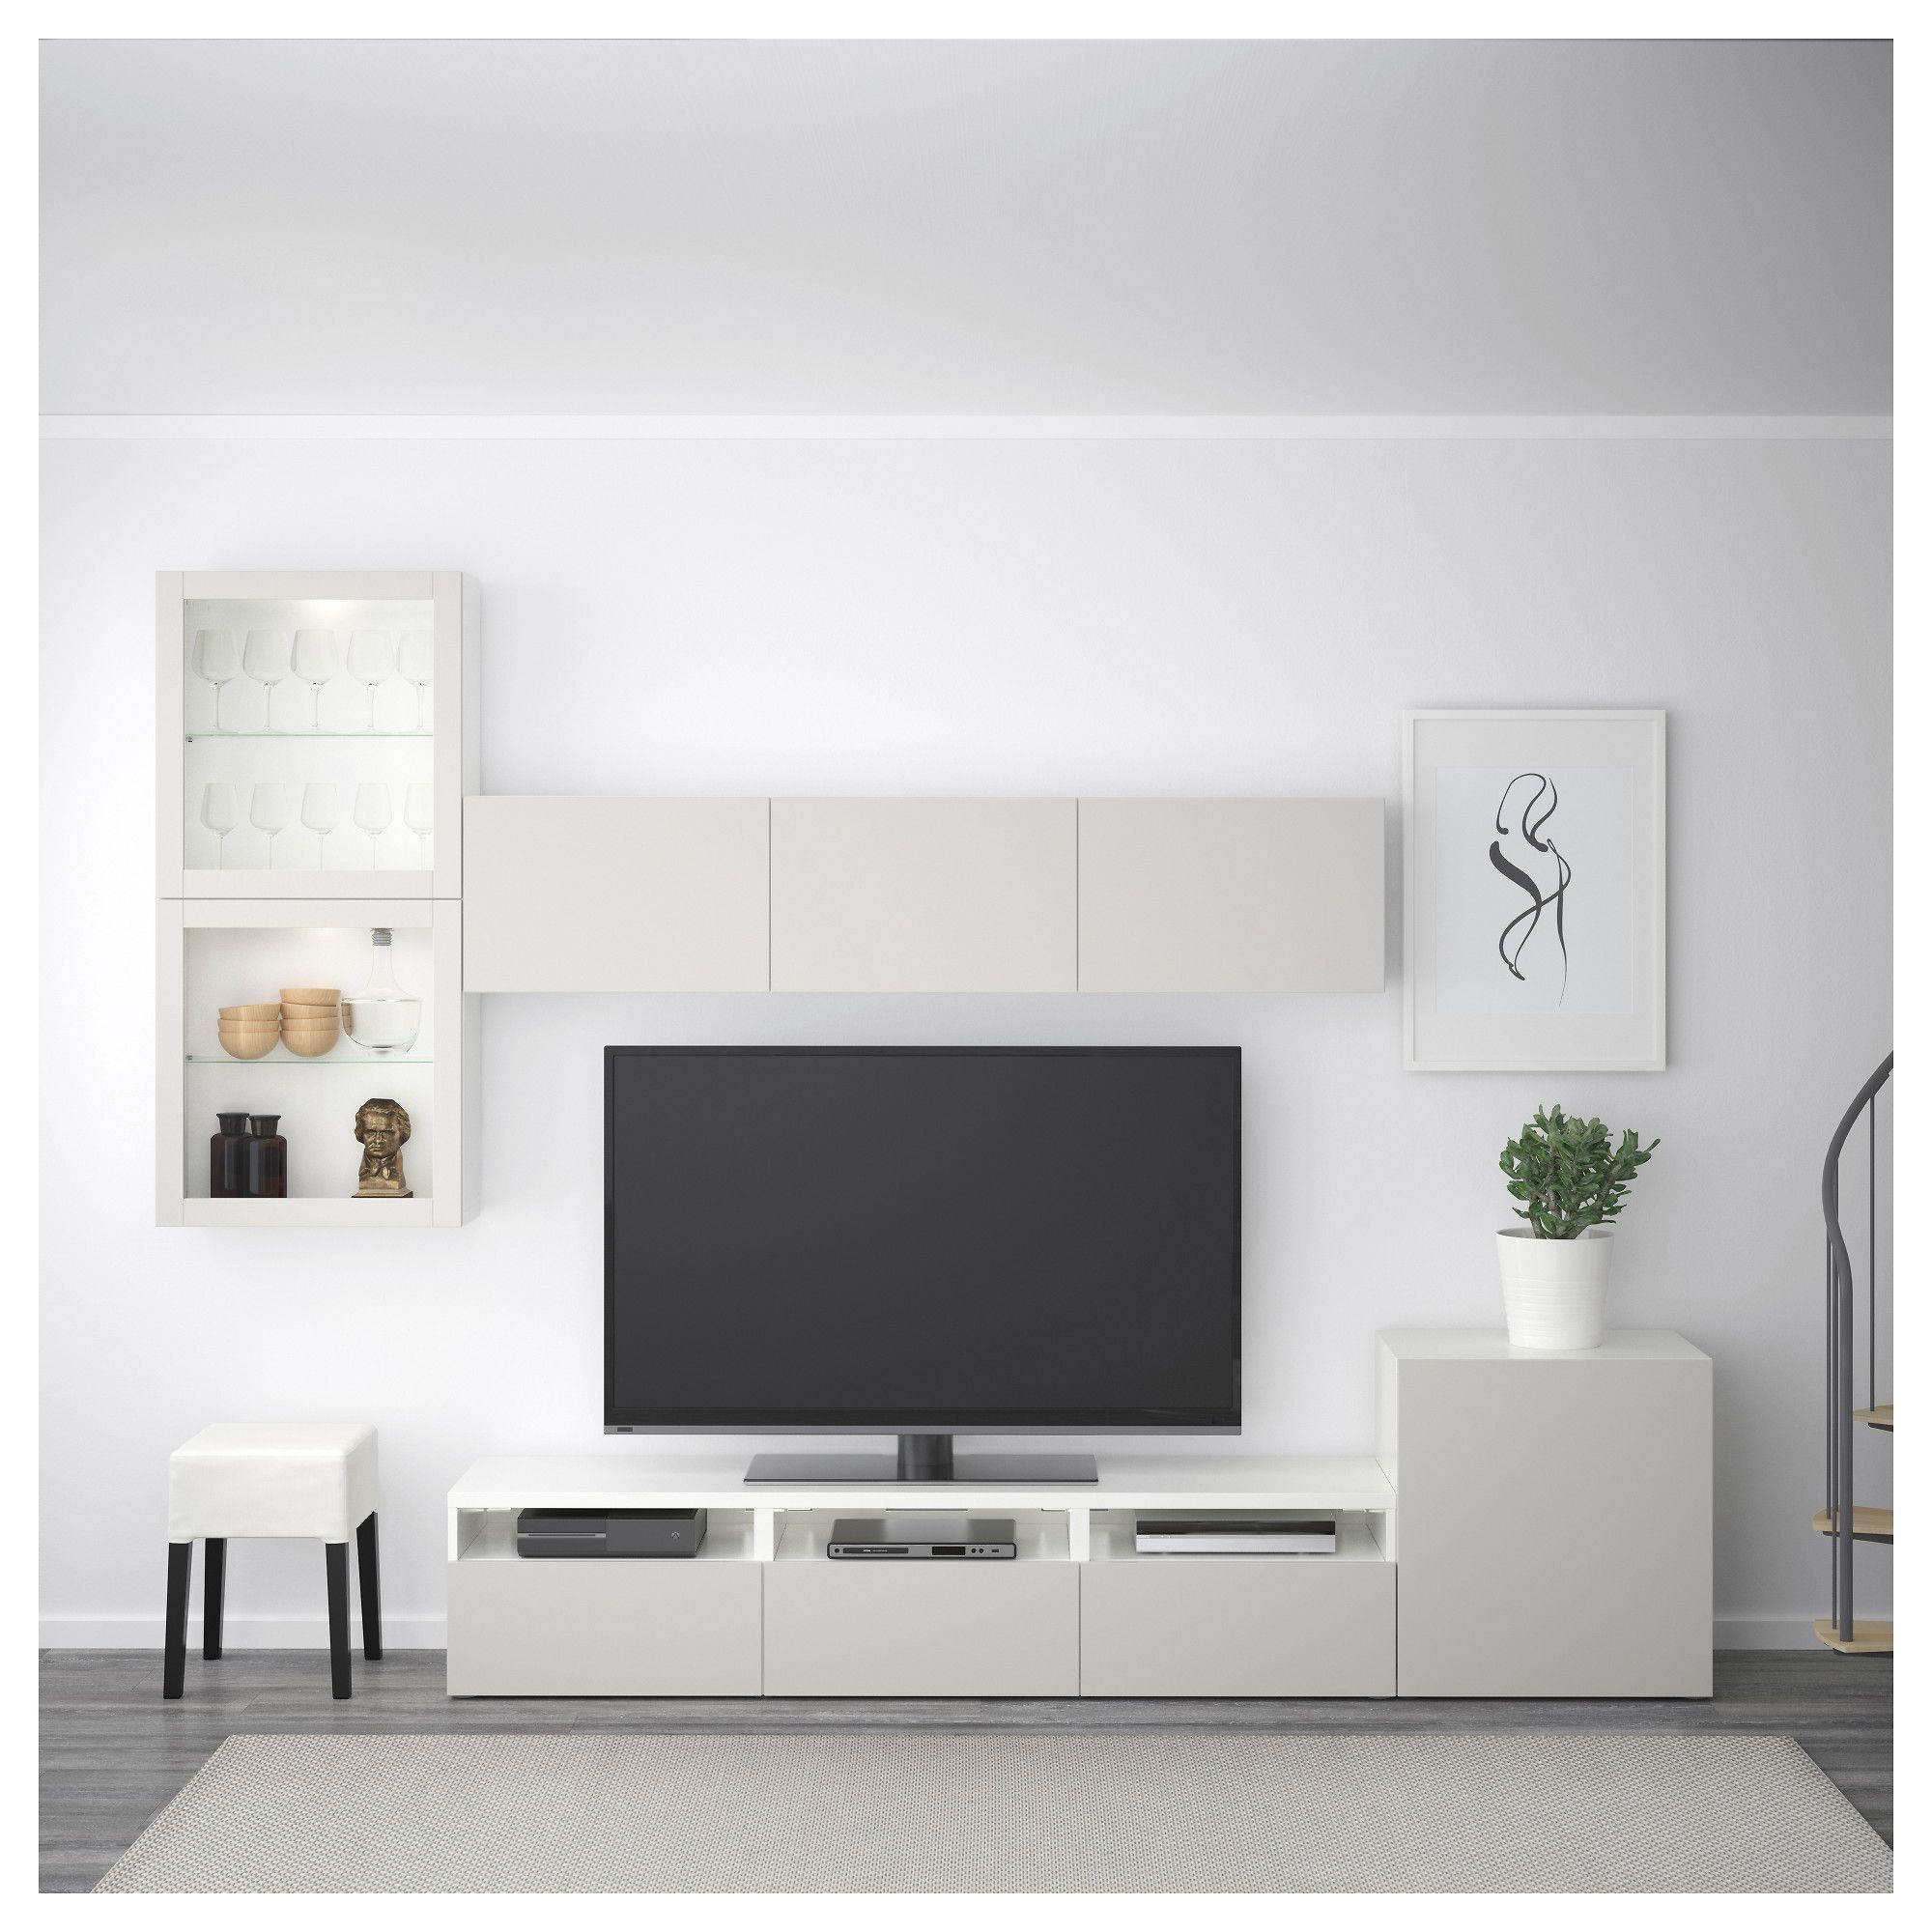 Ikea Bestå Tv Storage Combination Glass Doors White Lappviken Light Ikea Living Room Living Room Tv Wall Living Room Diy